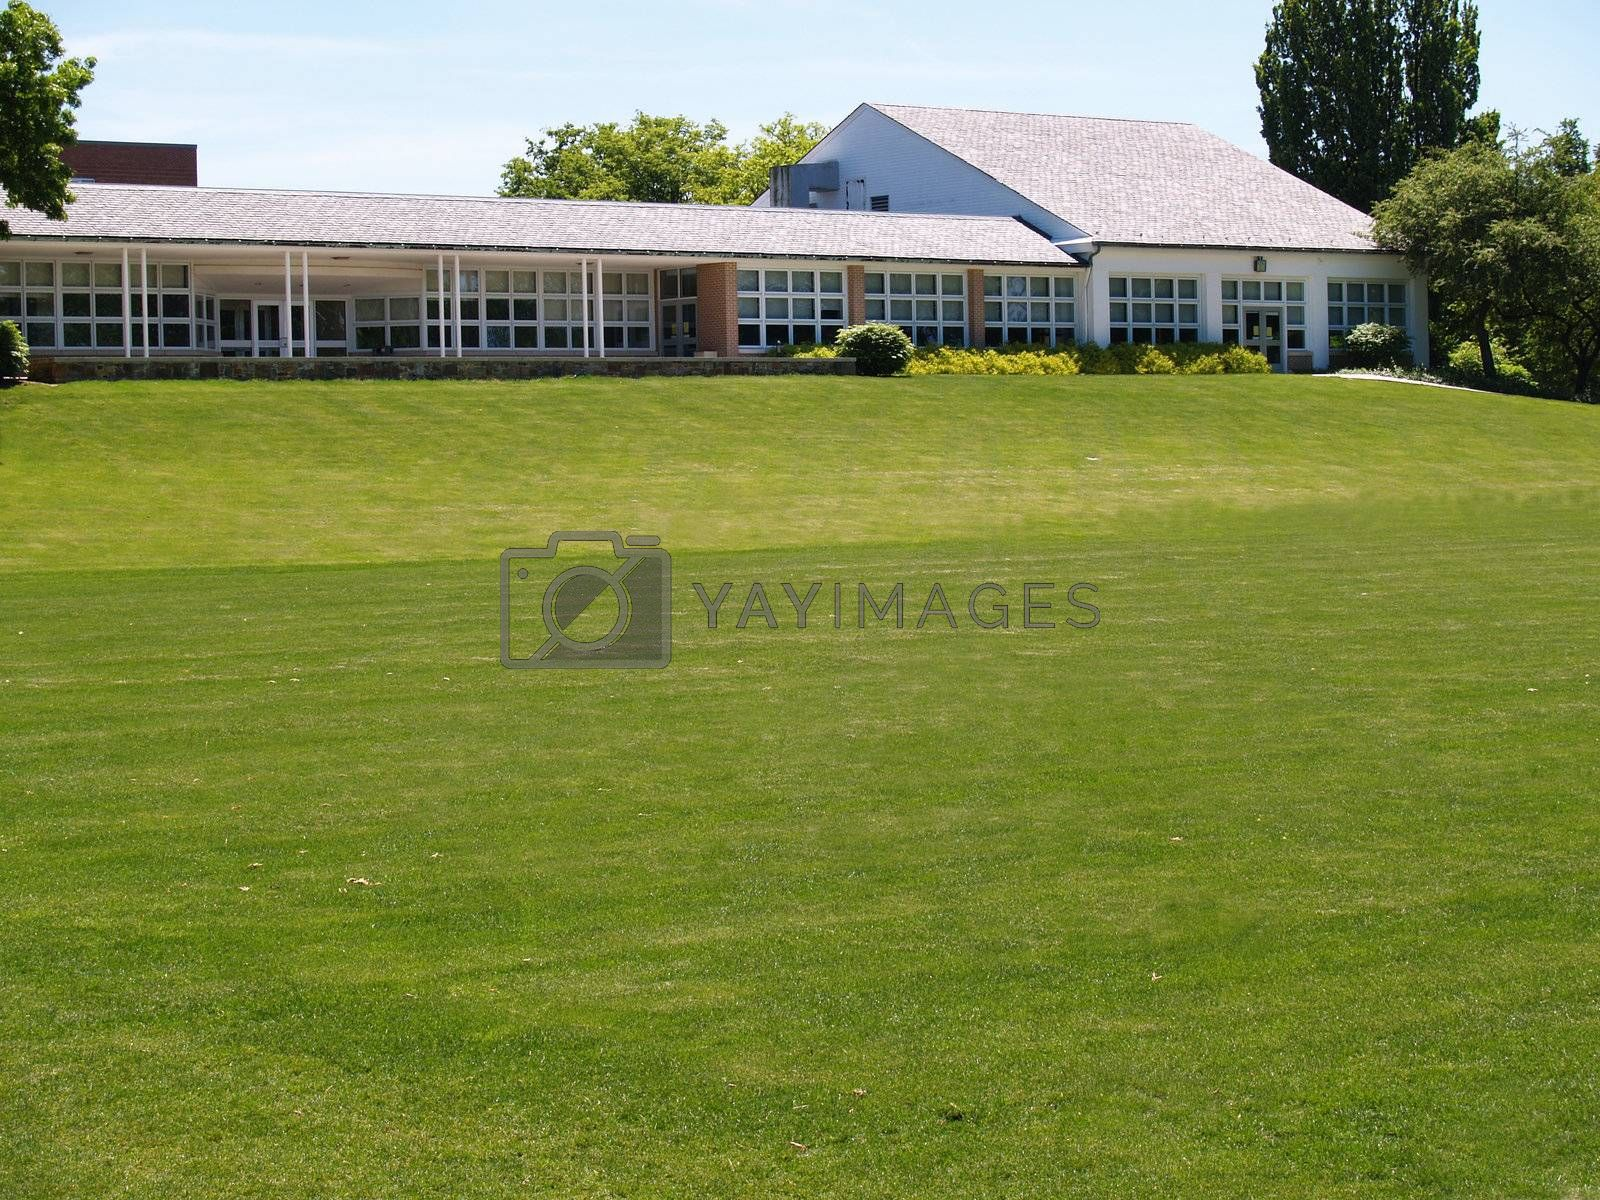 a large grass area by a building with many windows